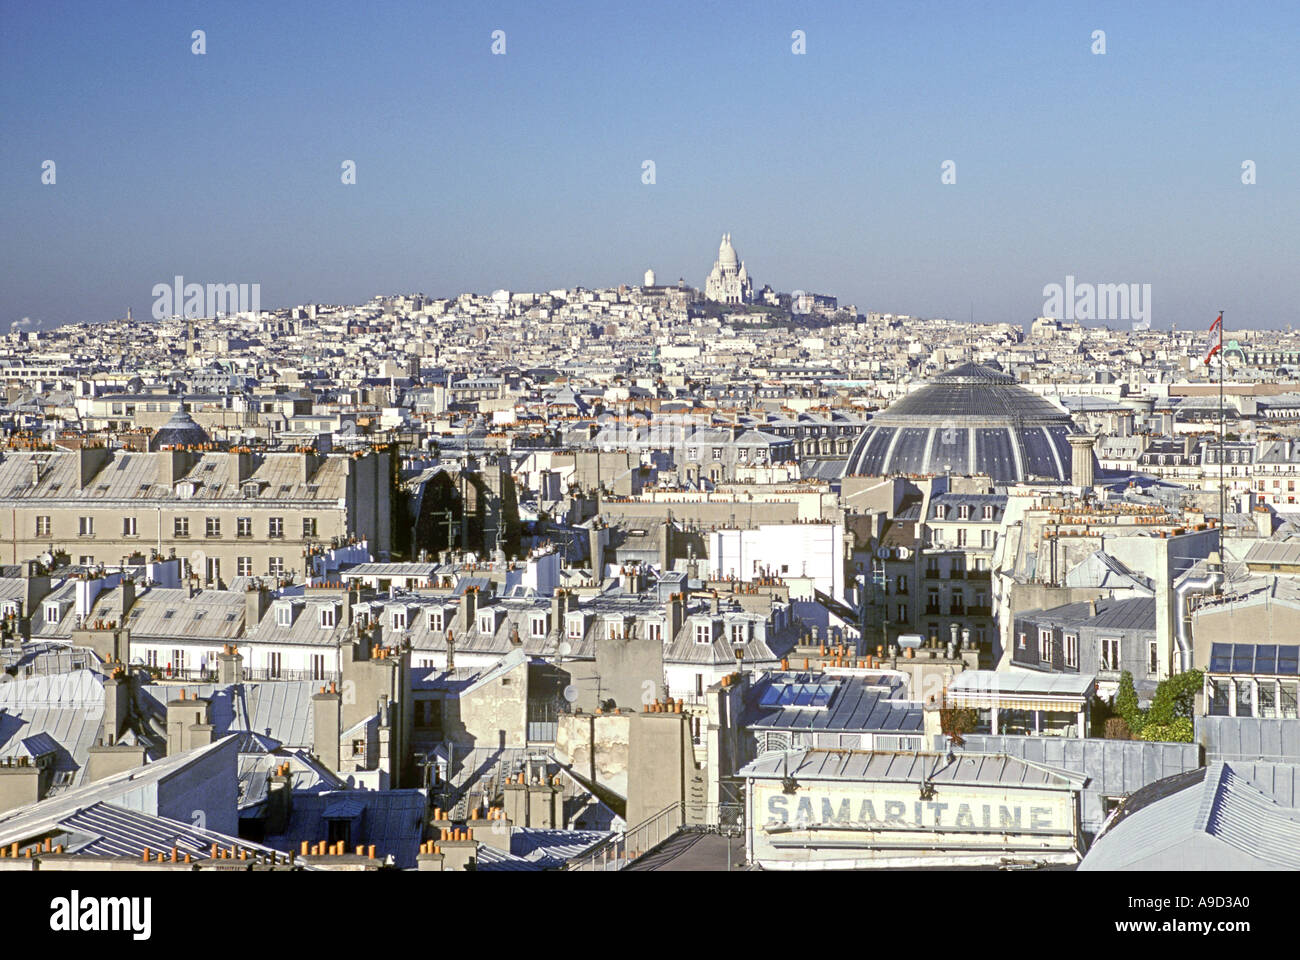 Paris skyline with the Sacre Coeur cathedral visible on the horizon. - Stock Image